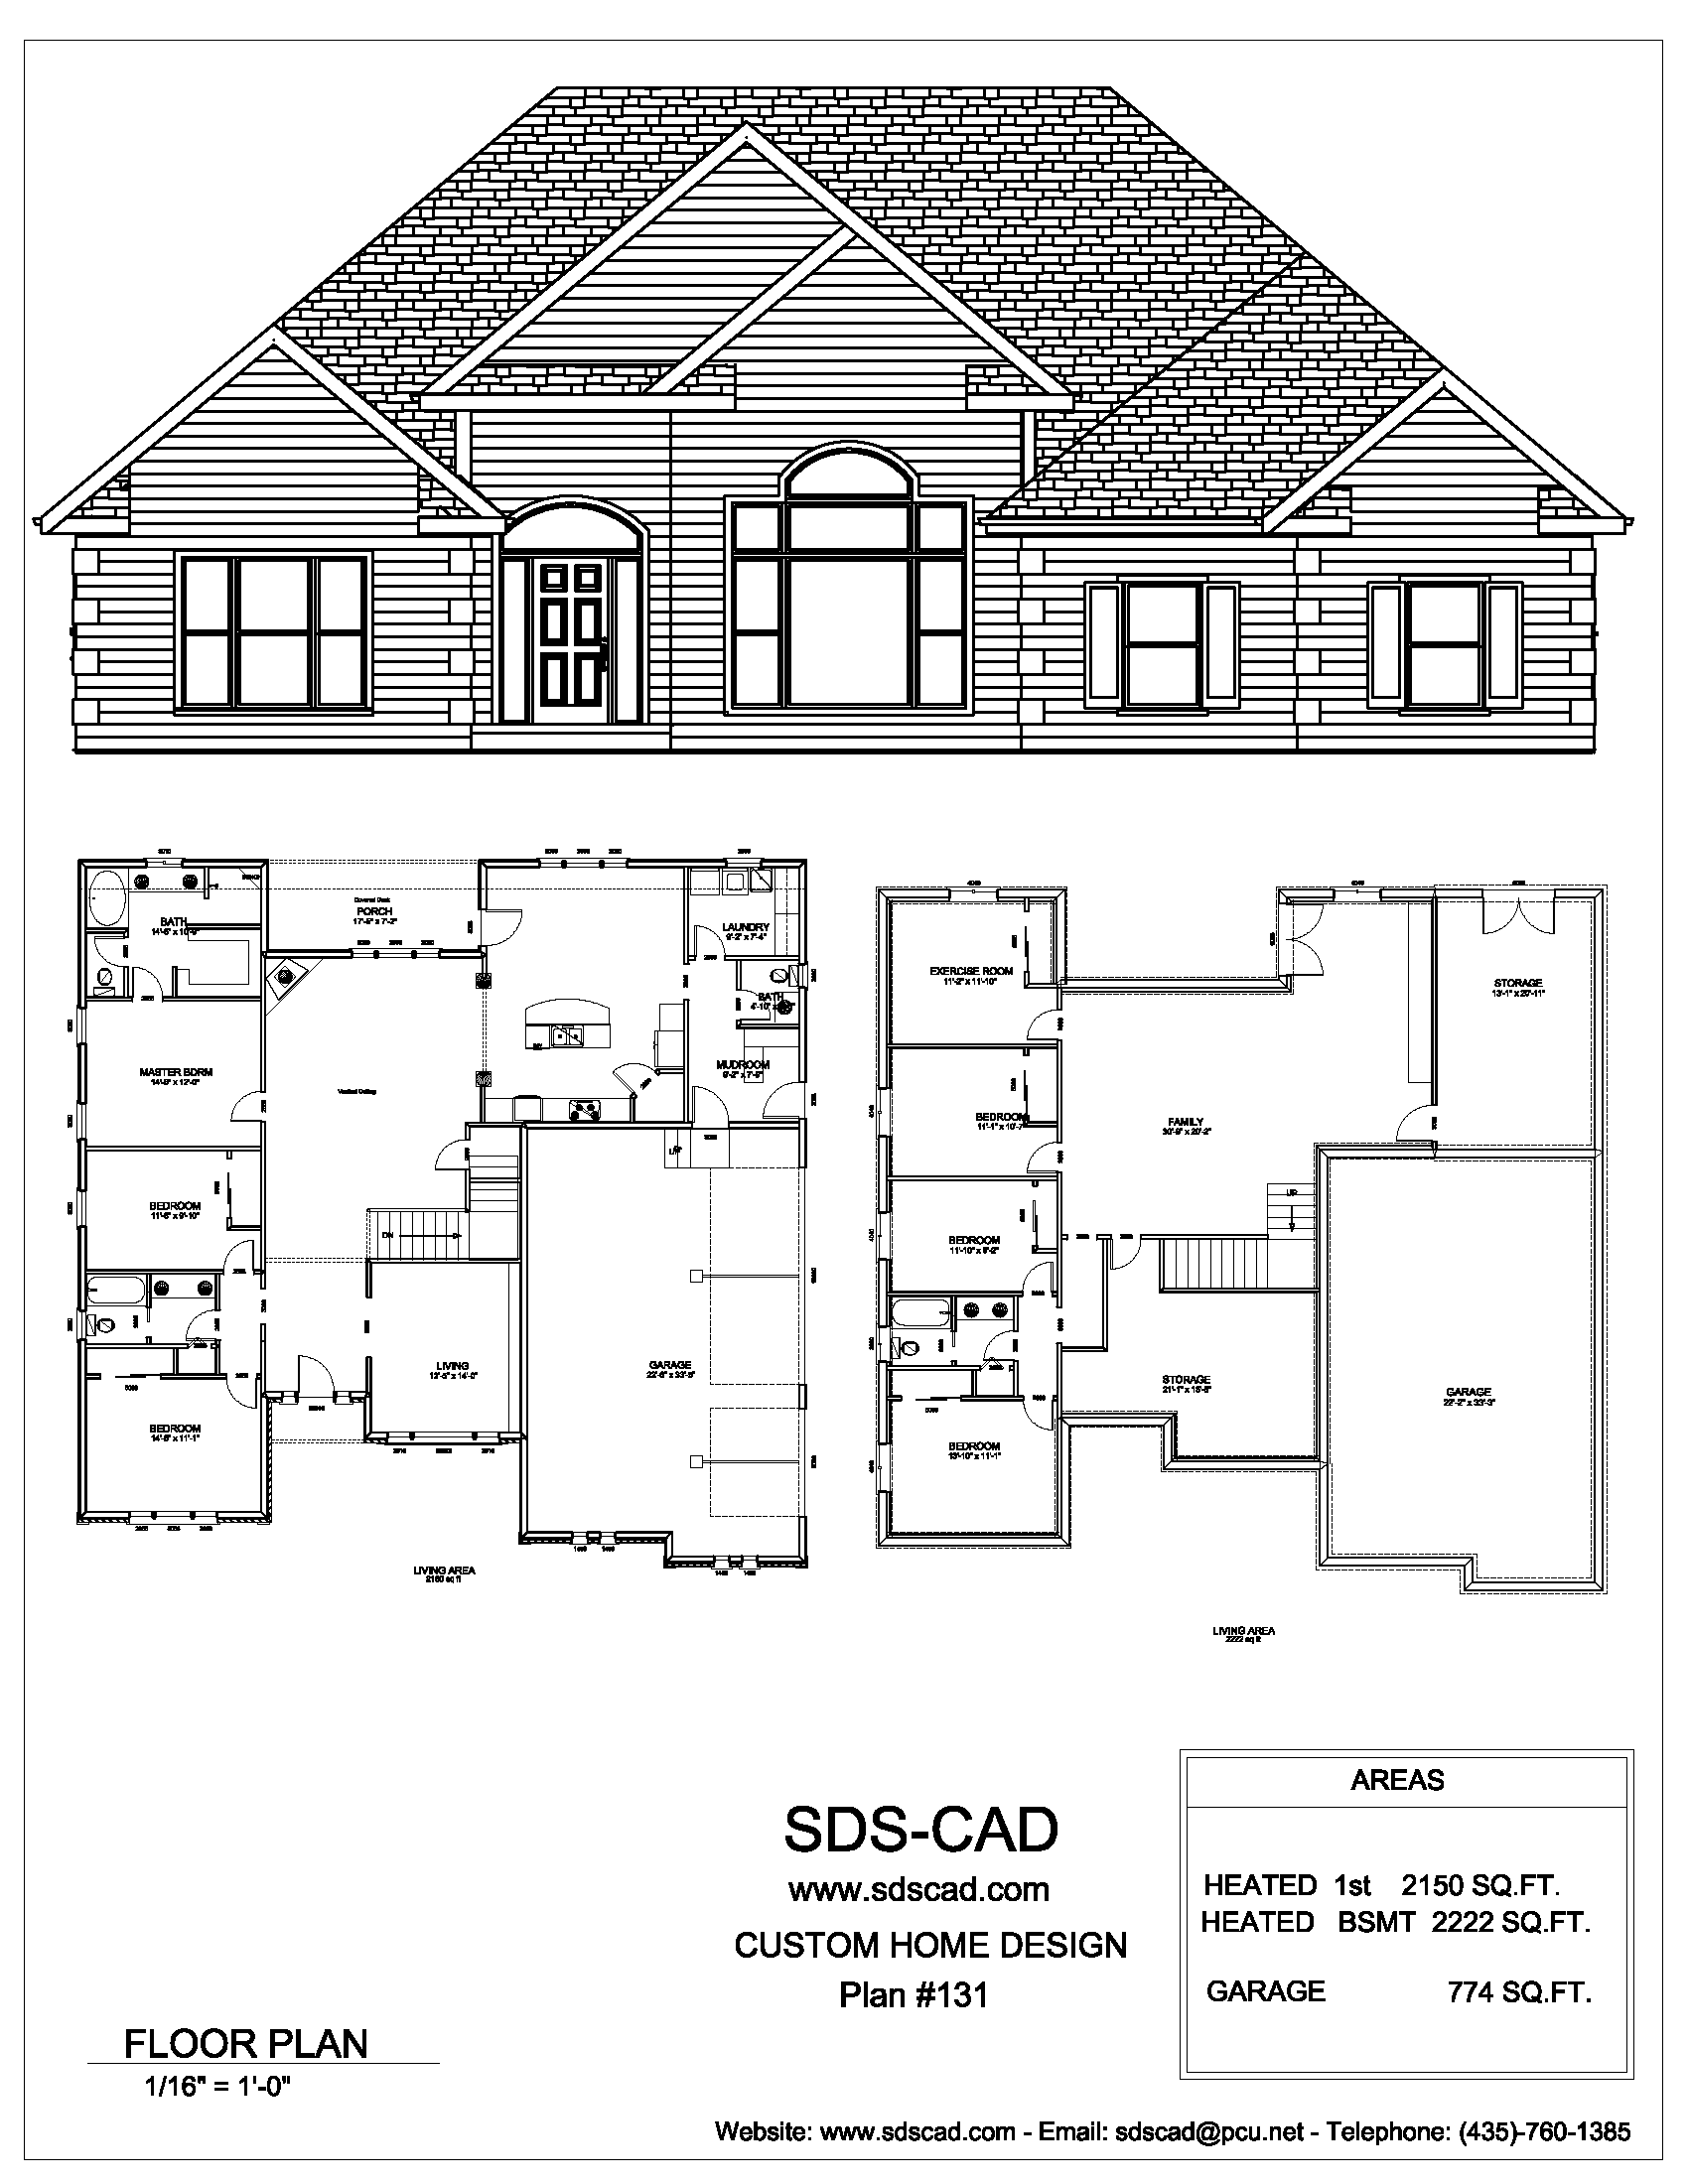 House blueprints sdscad house plans 18